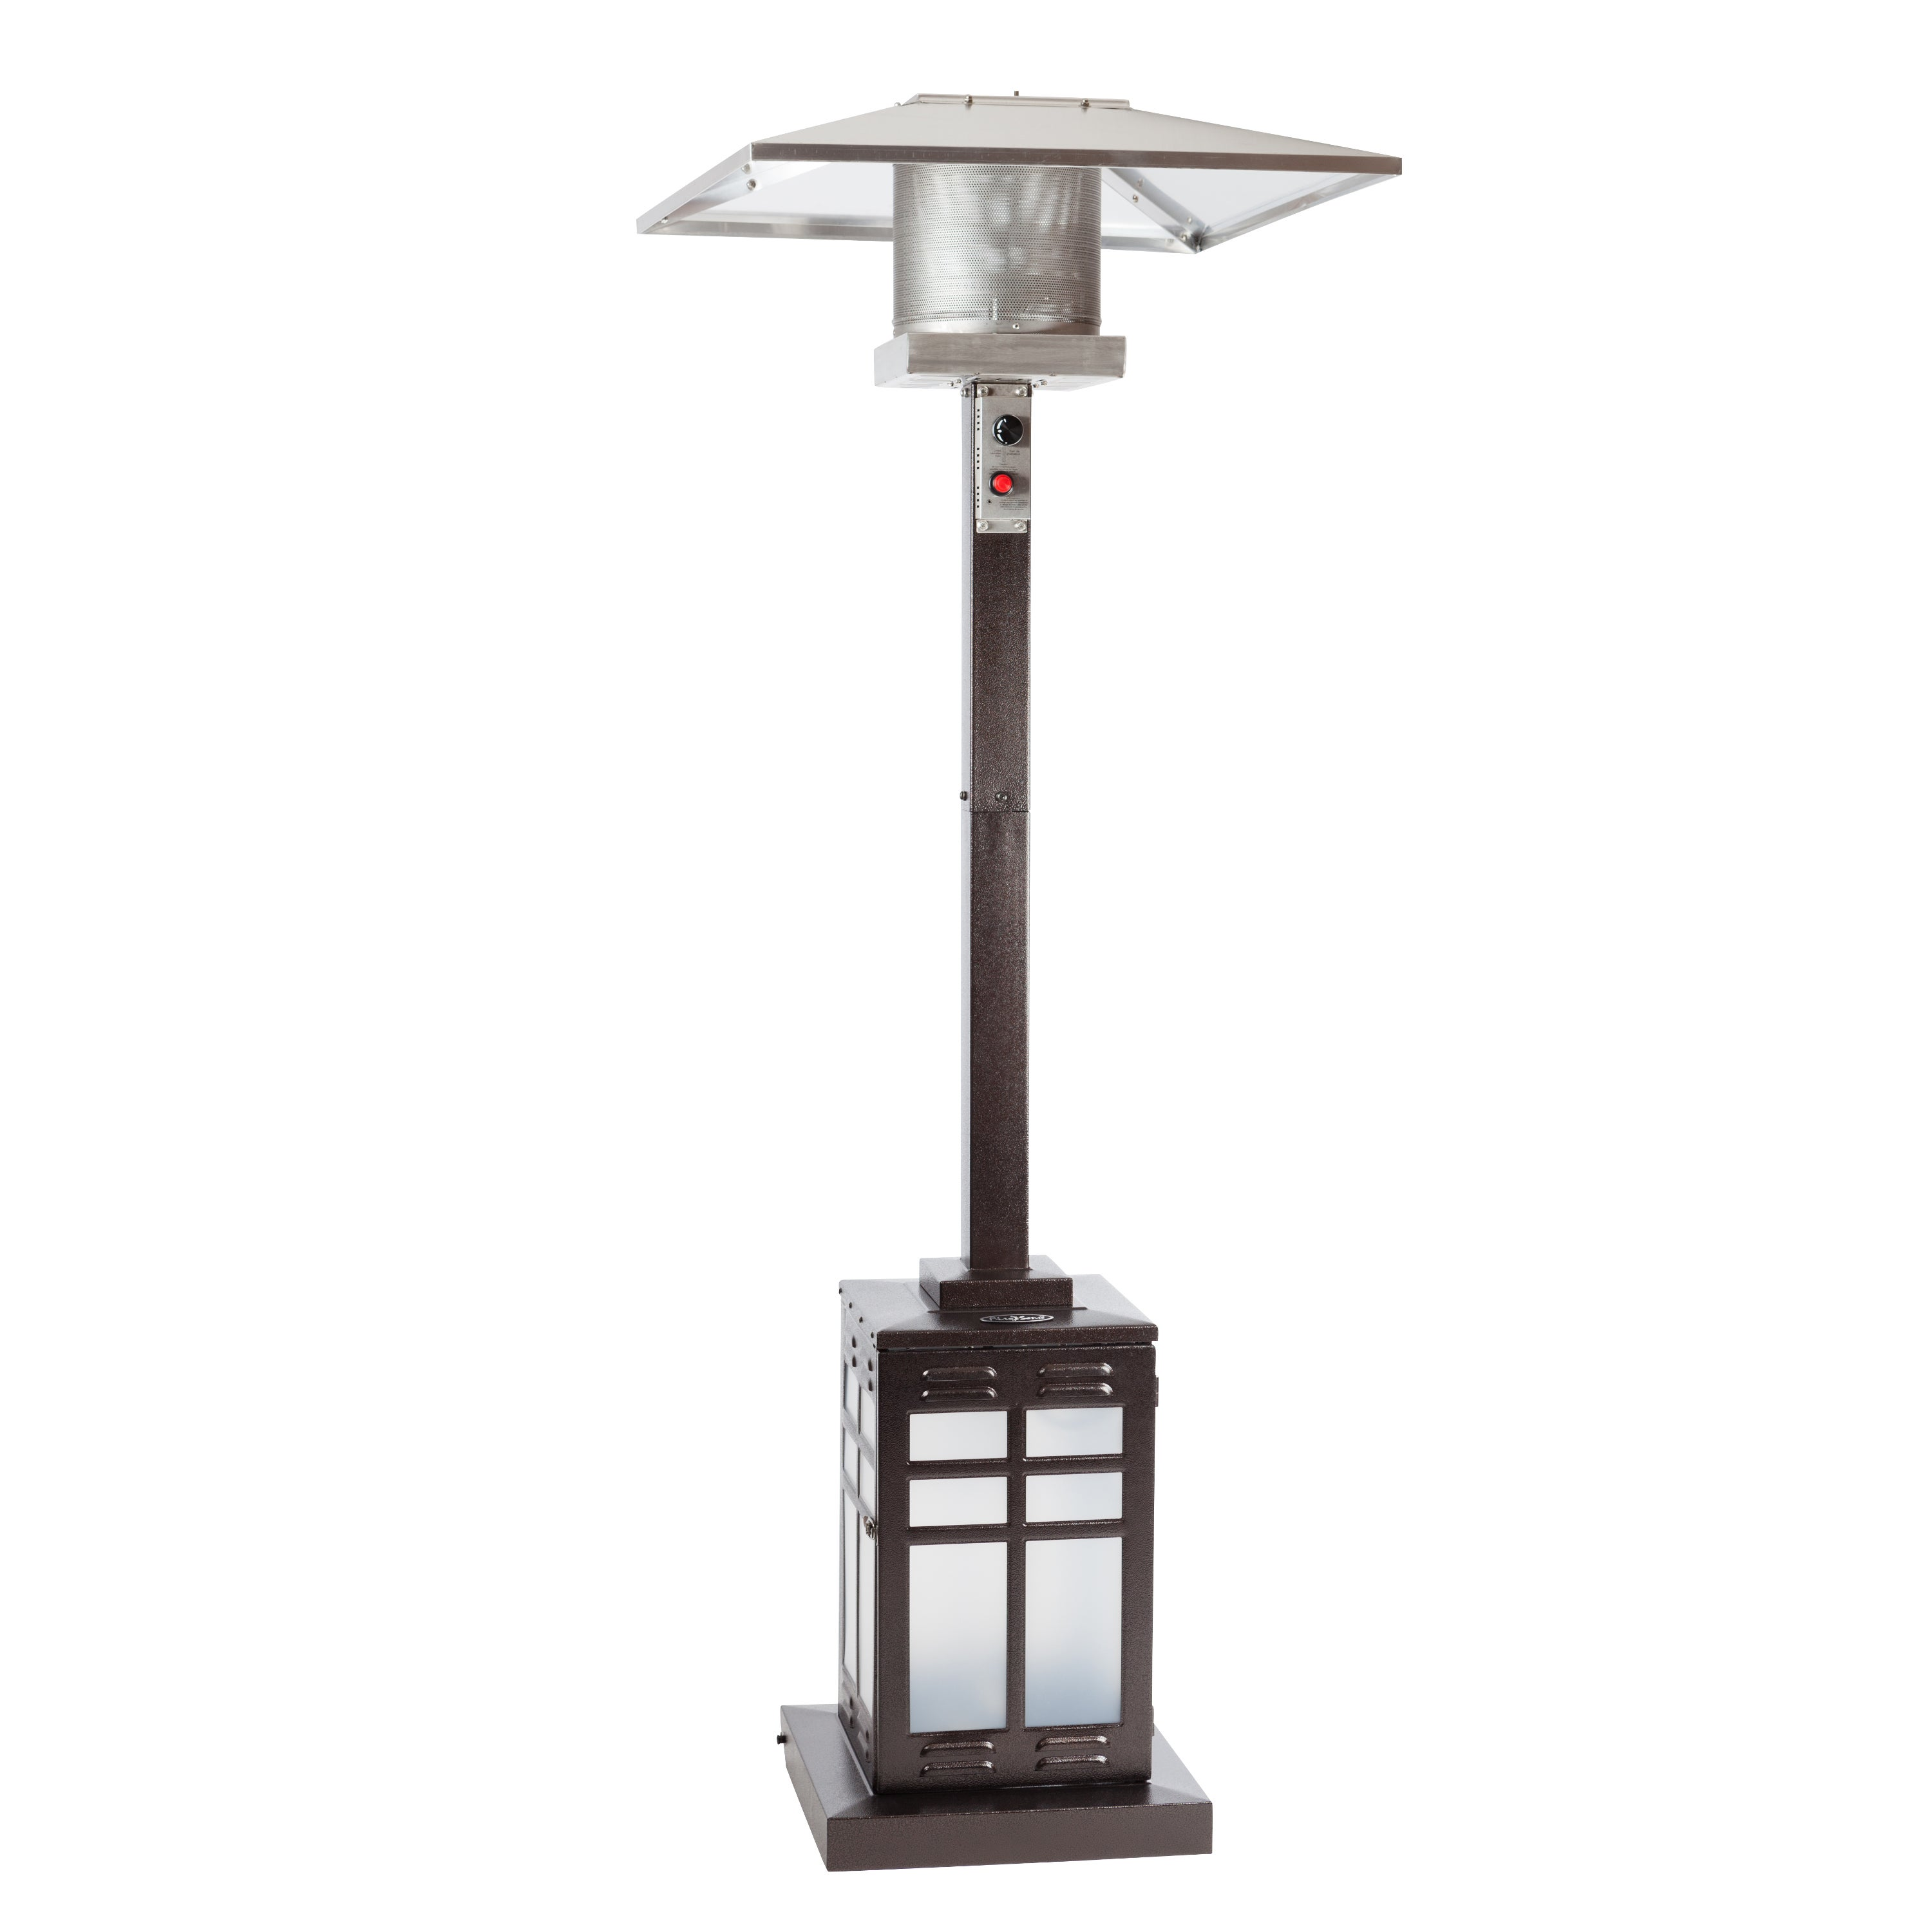 outdoors heating en sense patio heaters furniture skyfire the canada fire categories torch depot bellagio heater outdoor home p